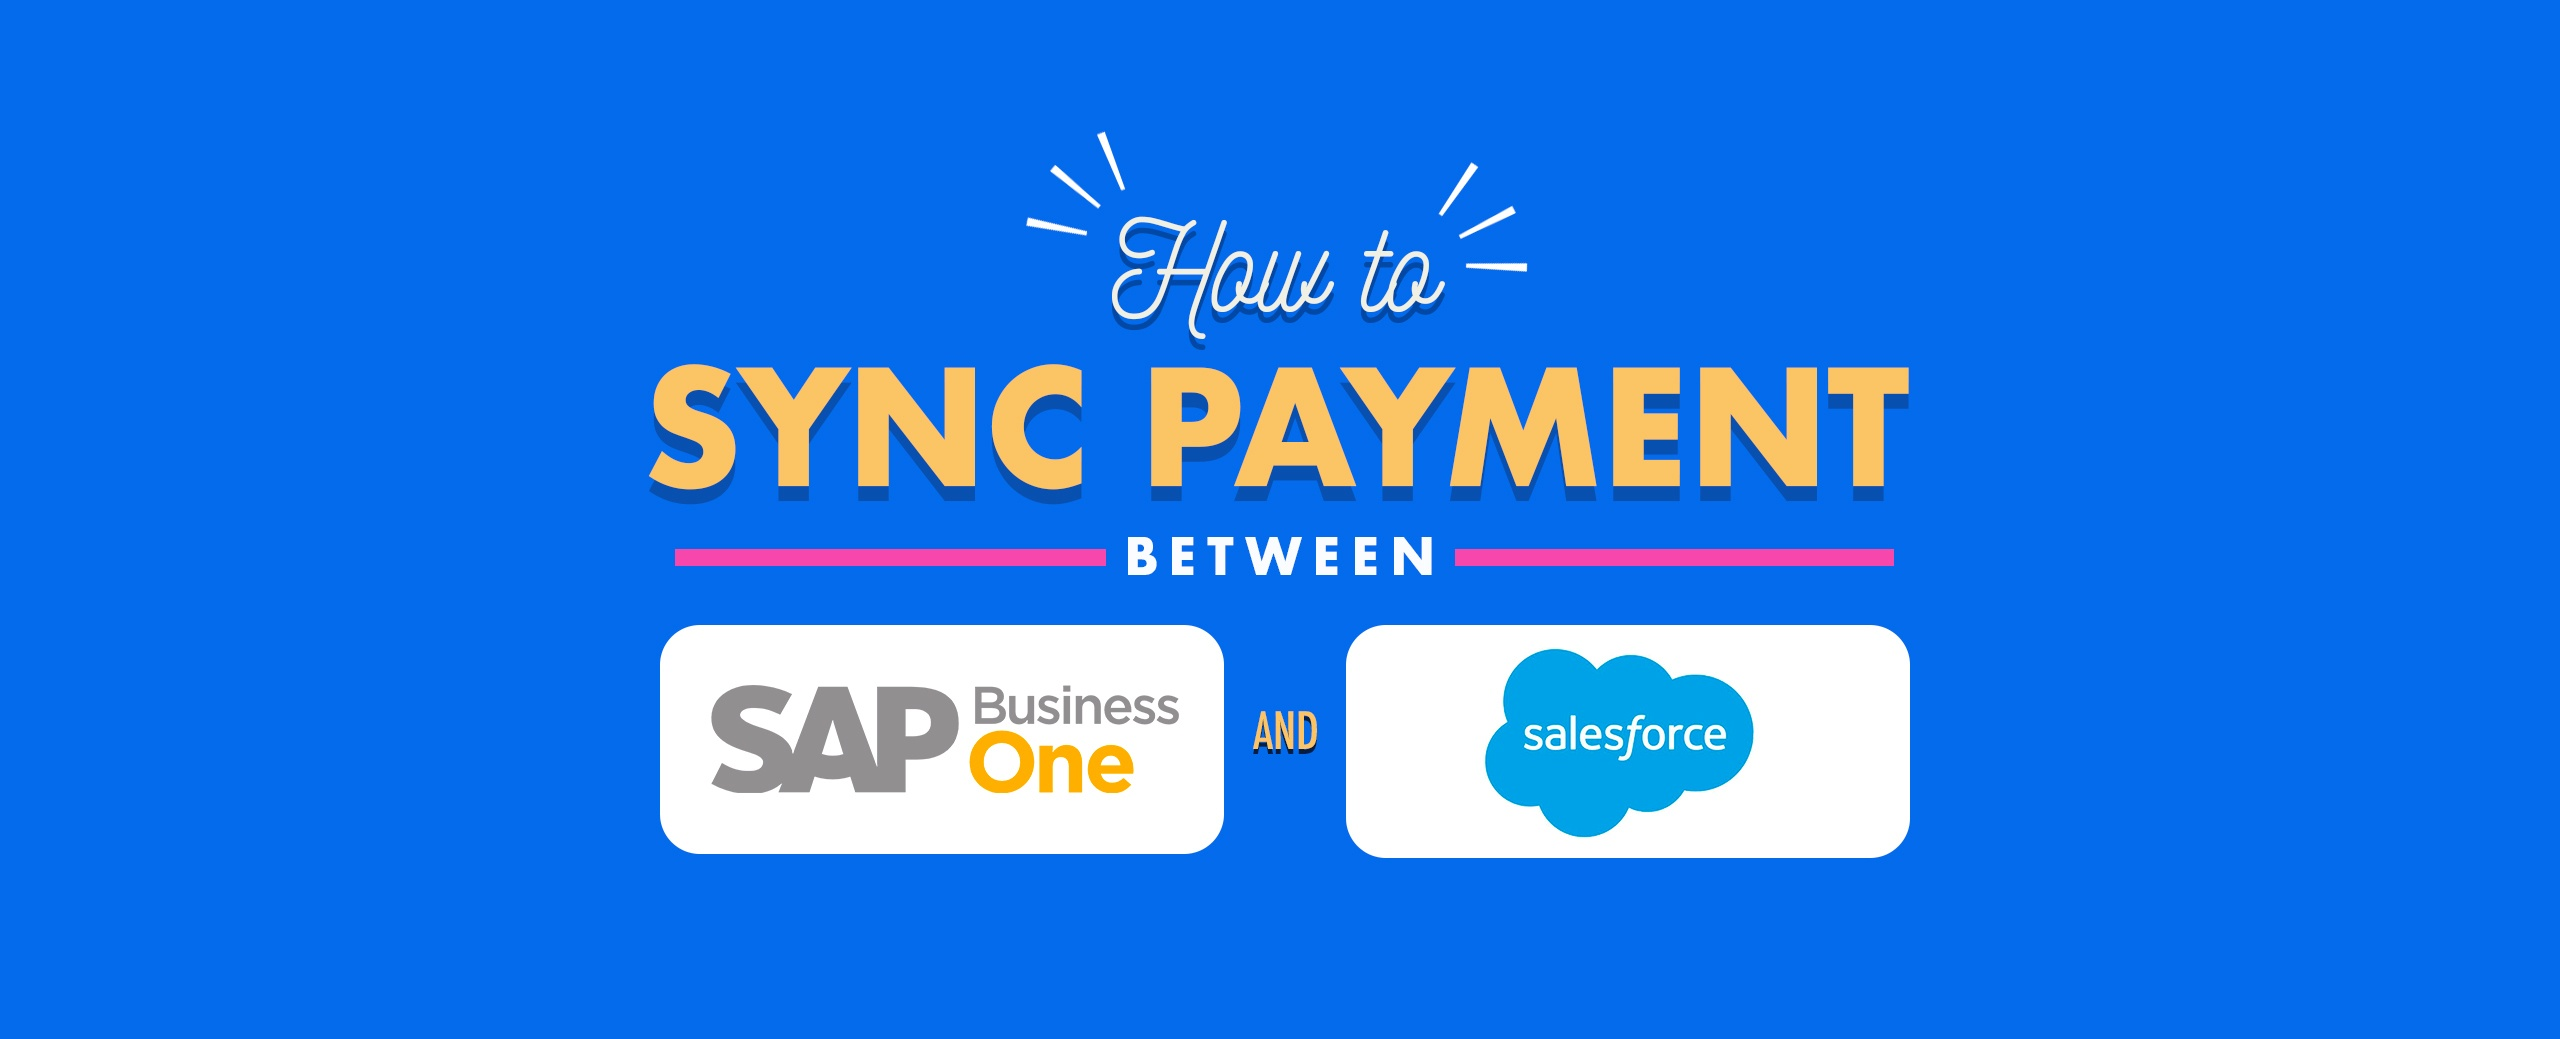 How-to-Sync-Payment-between-SAP-Business-One-and-Salesforce